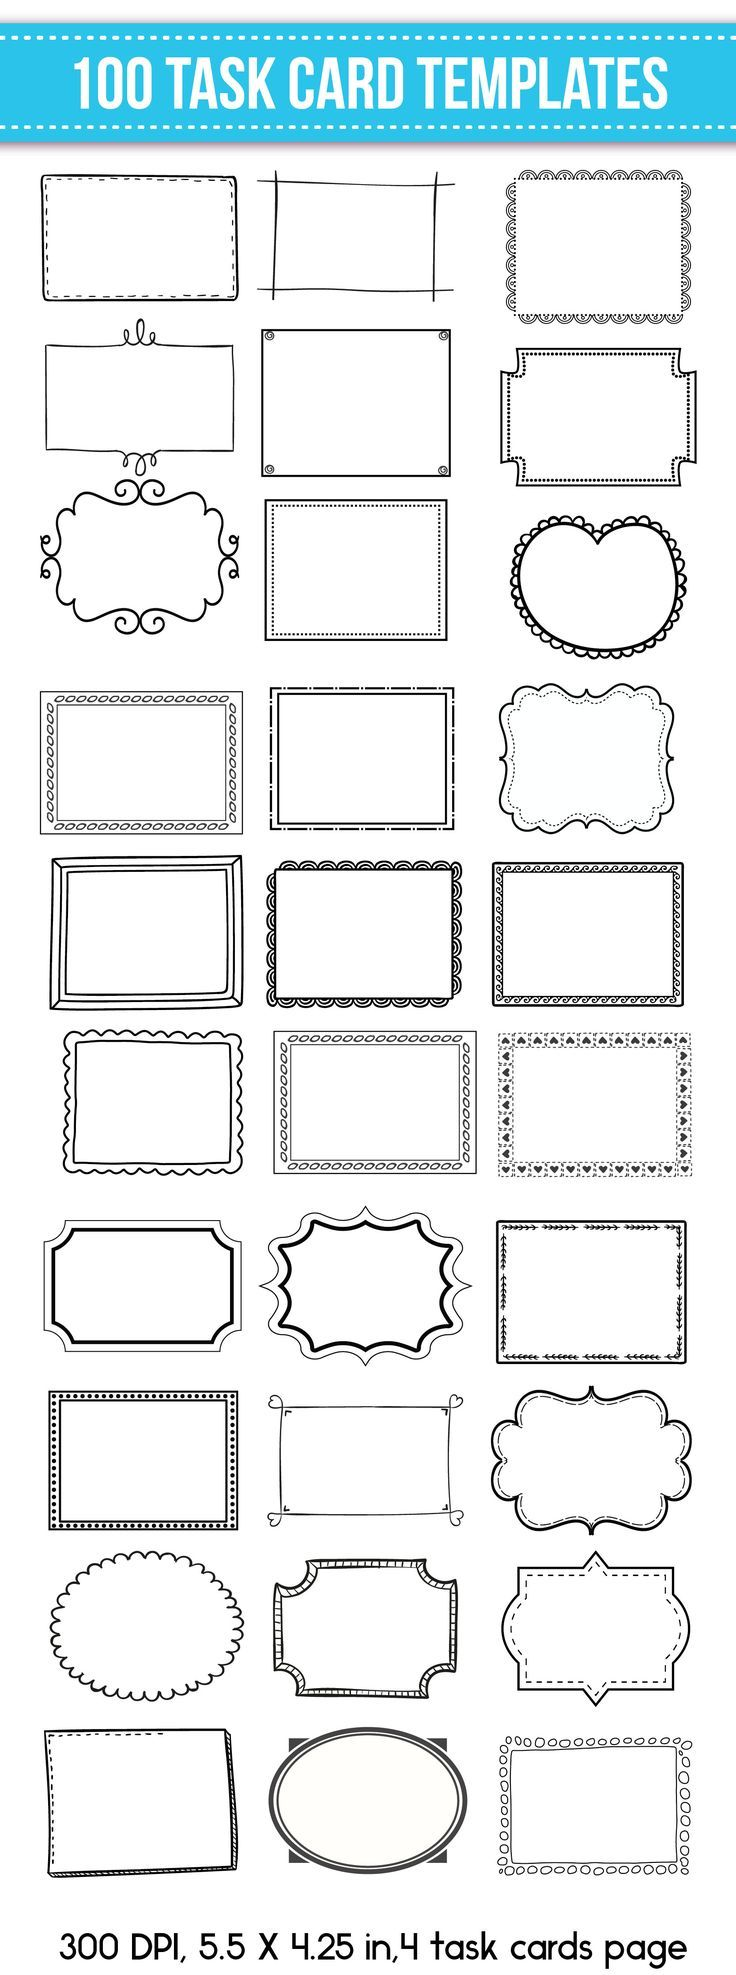 Task Card Templates Editable 100 Back To School Ready With Tpt